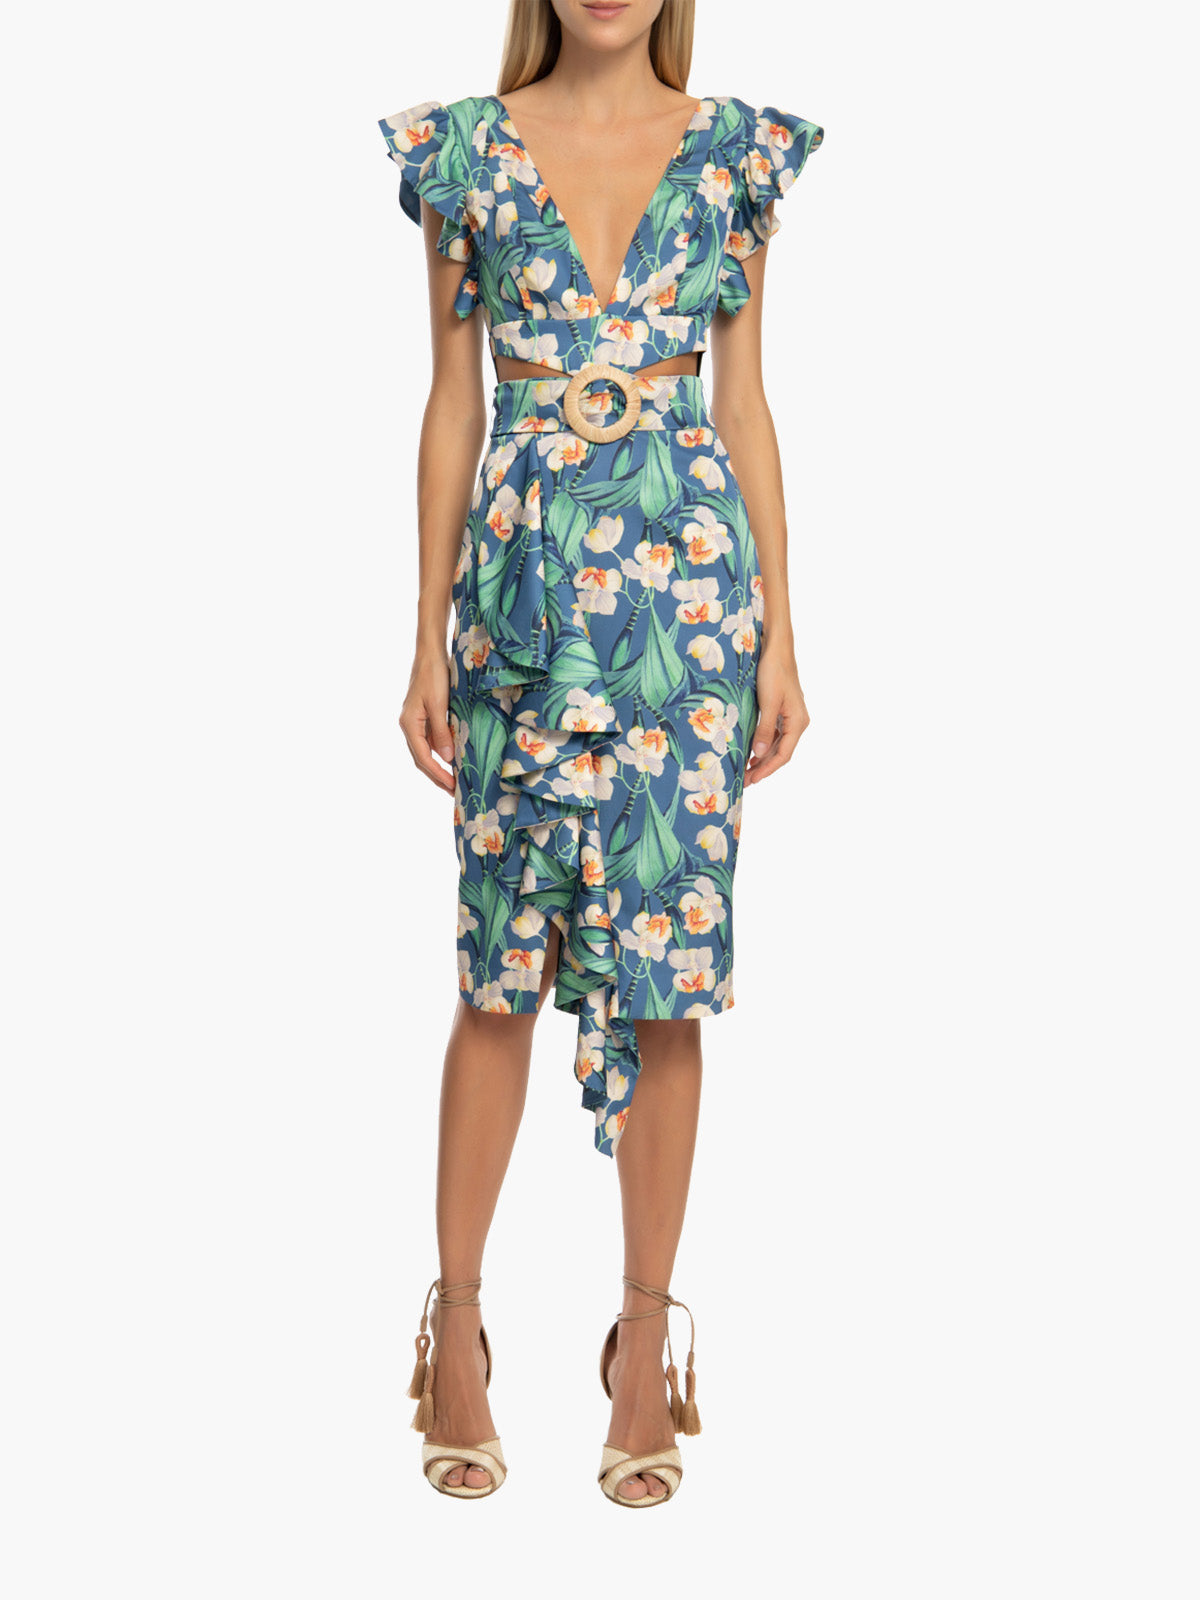 Floral Belted Midi Dress | Blue Floral Belted Midi Dress | Blue